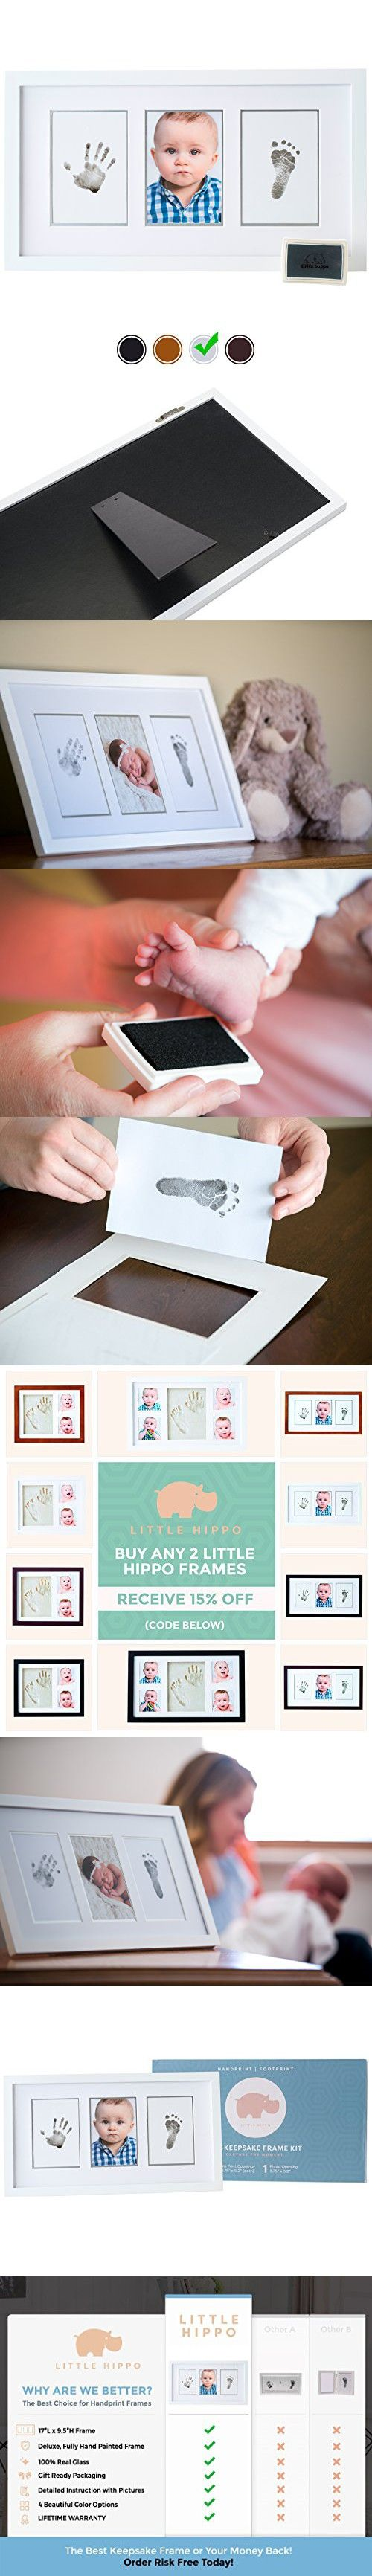 Baby Handprint Kit by Little Hippo - DELUXE EDITION! Newborn Baby Picture Frame (WHITE) & Non Toxic INK! Baby Footprint kit, best baby shower gifts! Perfect for Baby Boy gifts, and Baby Girls Gifts!